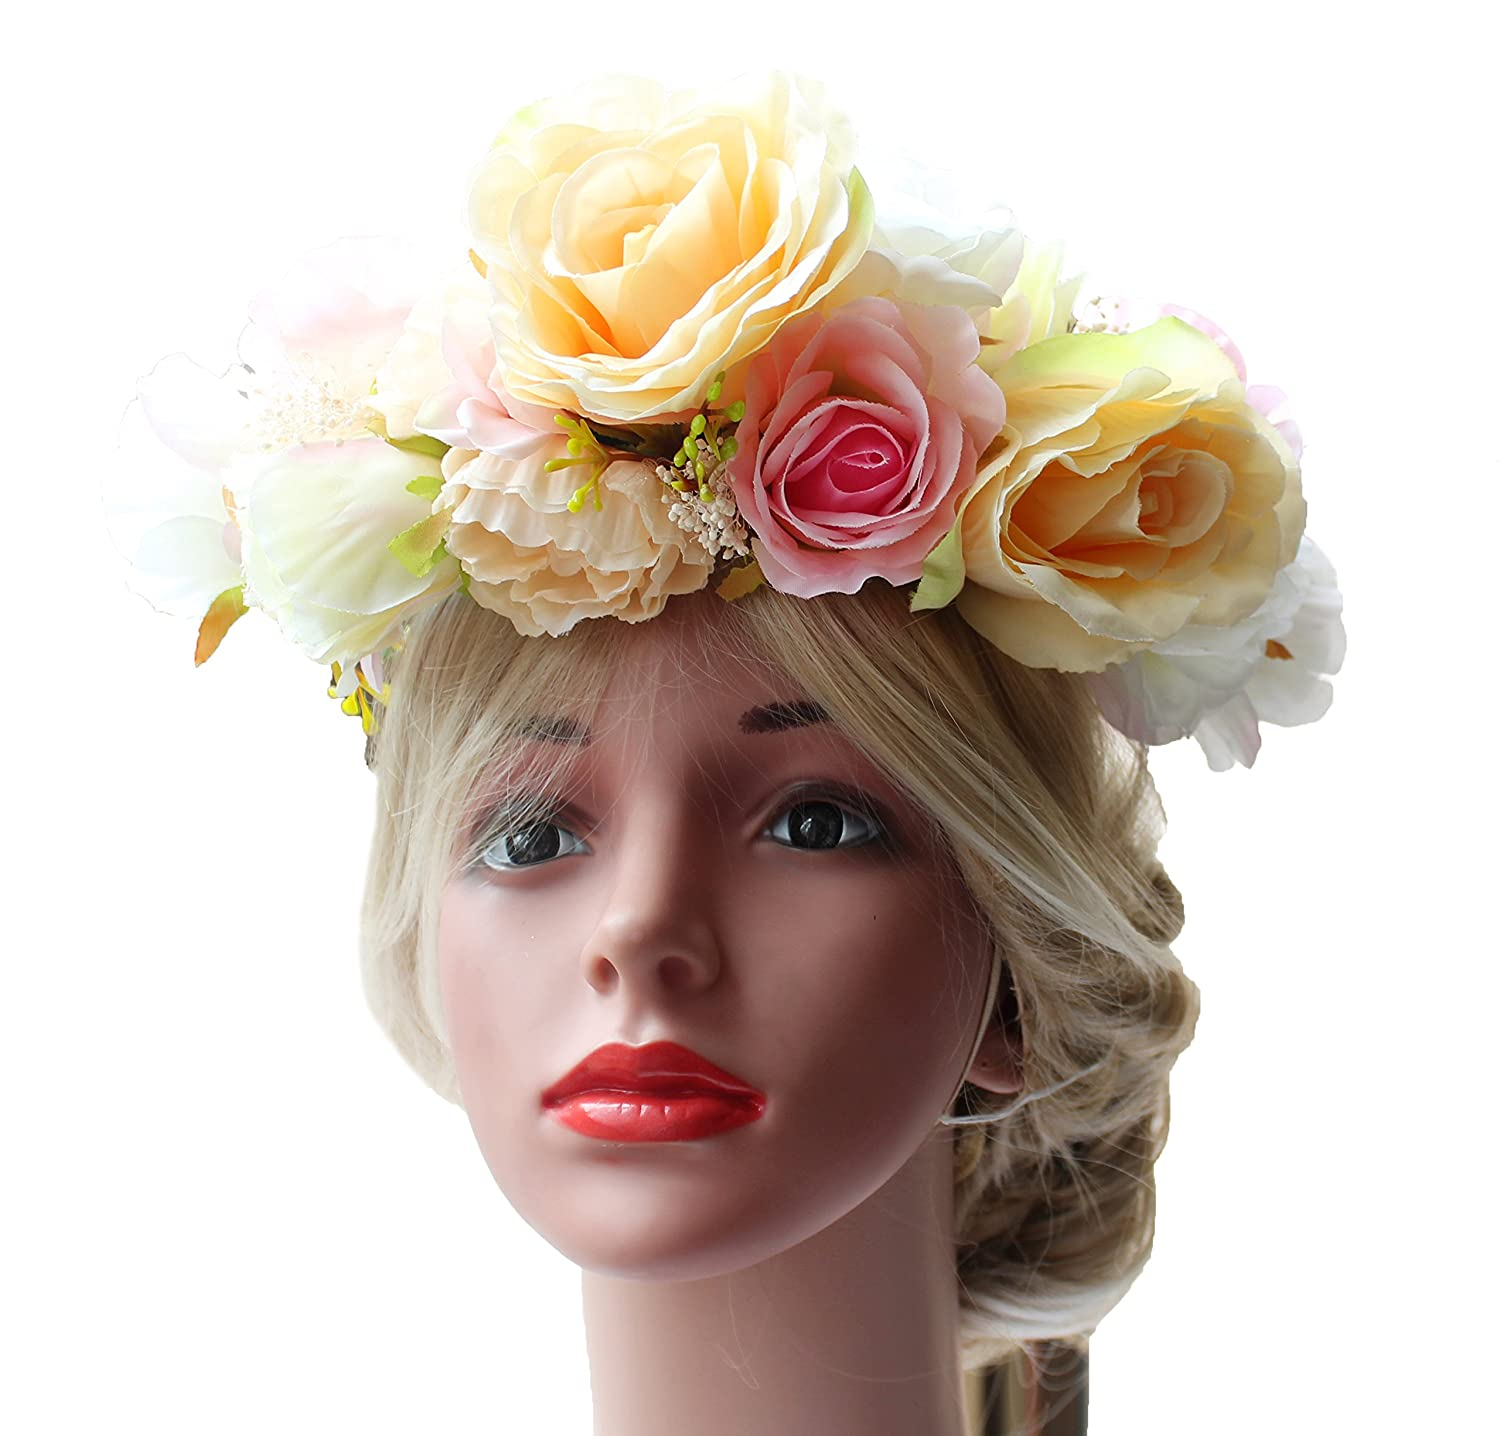 Amazon.com   LINFLL Exaggerated Big Flower Crown Wreath Headband Festival  Wedding Hair Floral Halo Headpiece with Ribbon Yellow   Beauty 70bef8d35ce